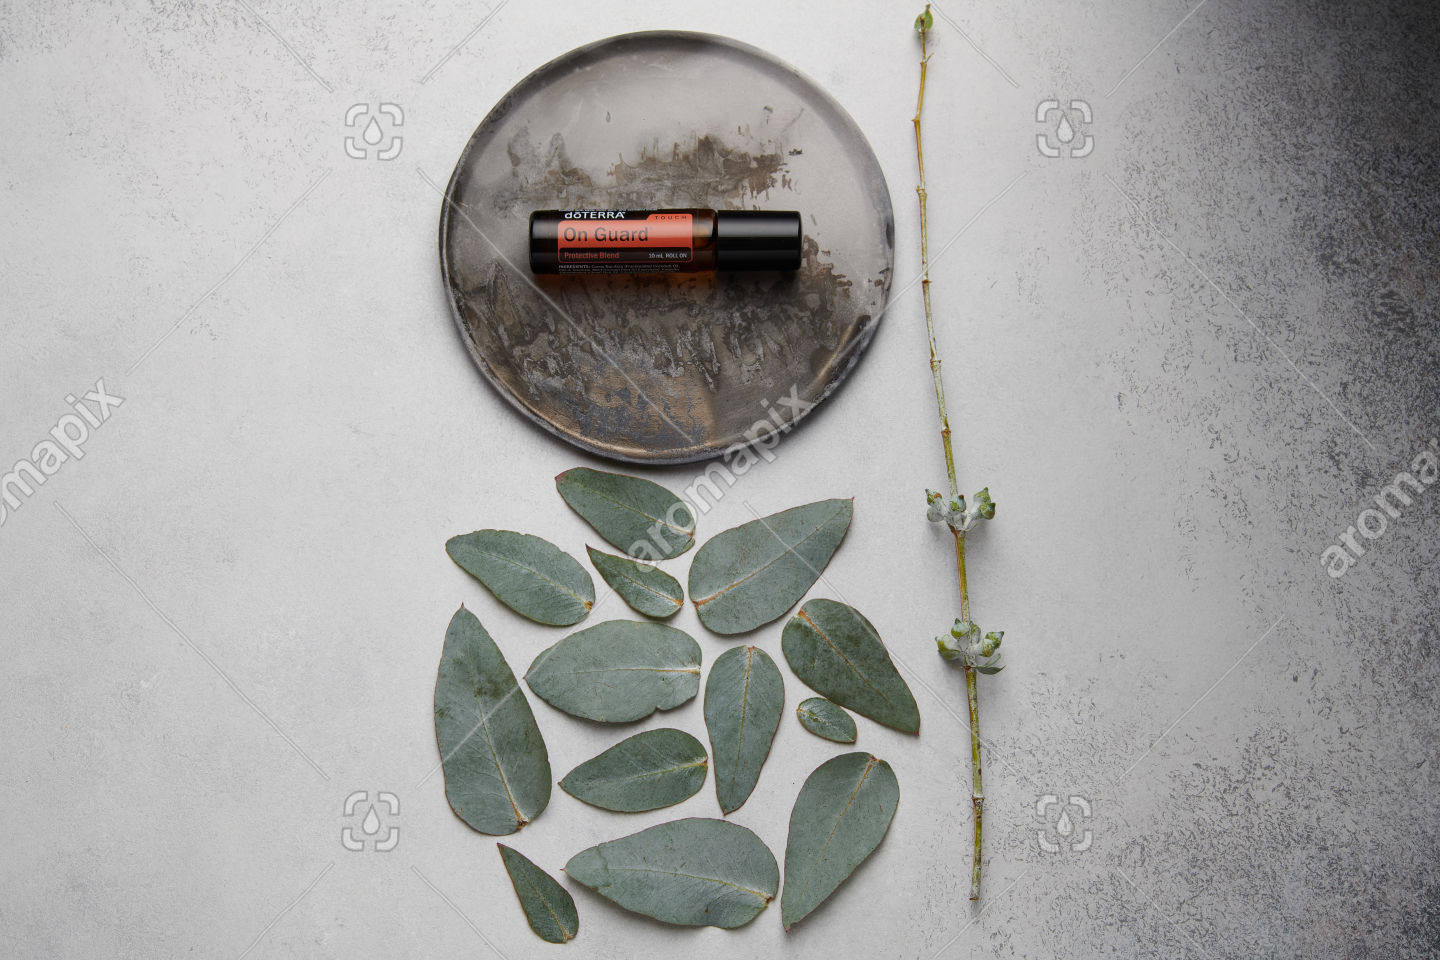 doTERRA On Guard Touch and eucalyptus leaves on white concrete